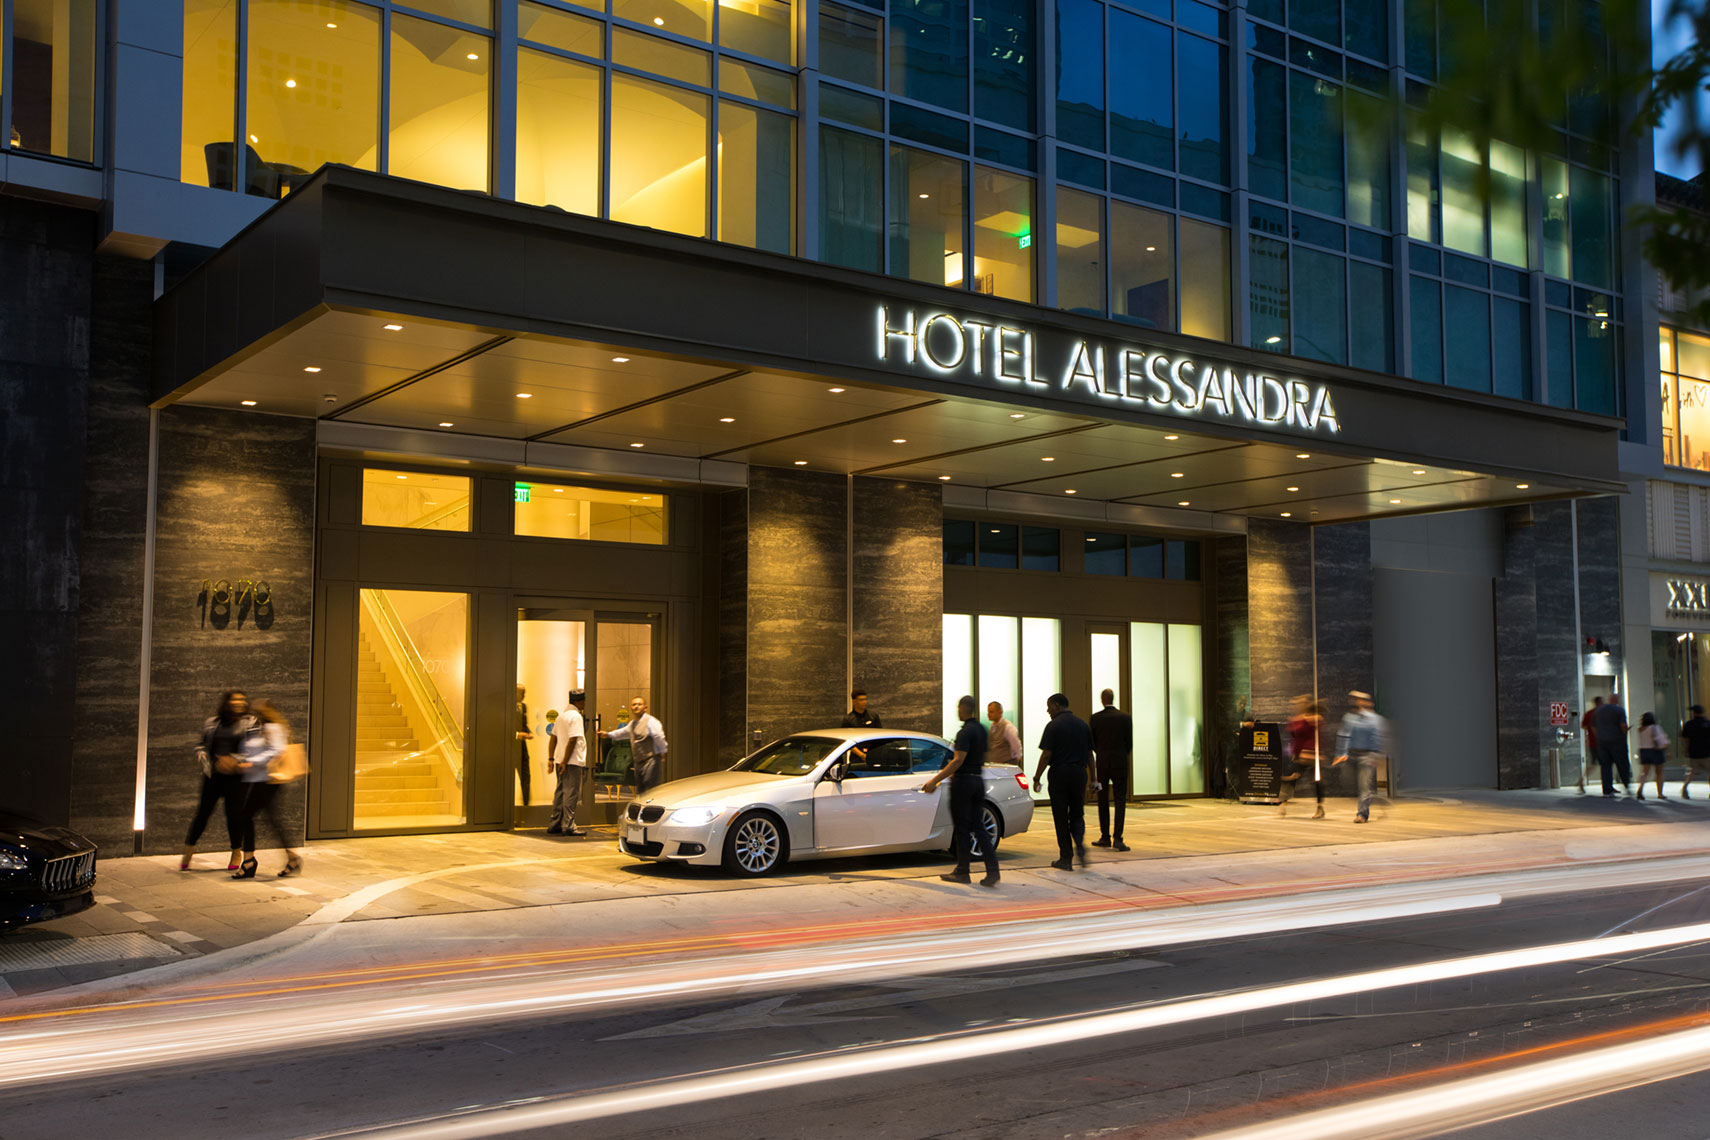 Hotel Alessandra Valet at GreenStreet in Houston by Texas Architectural Photographer